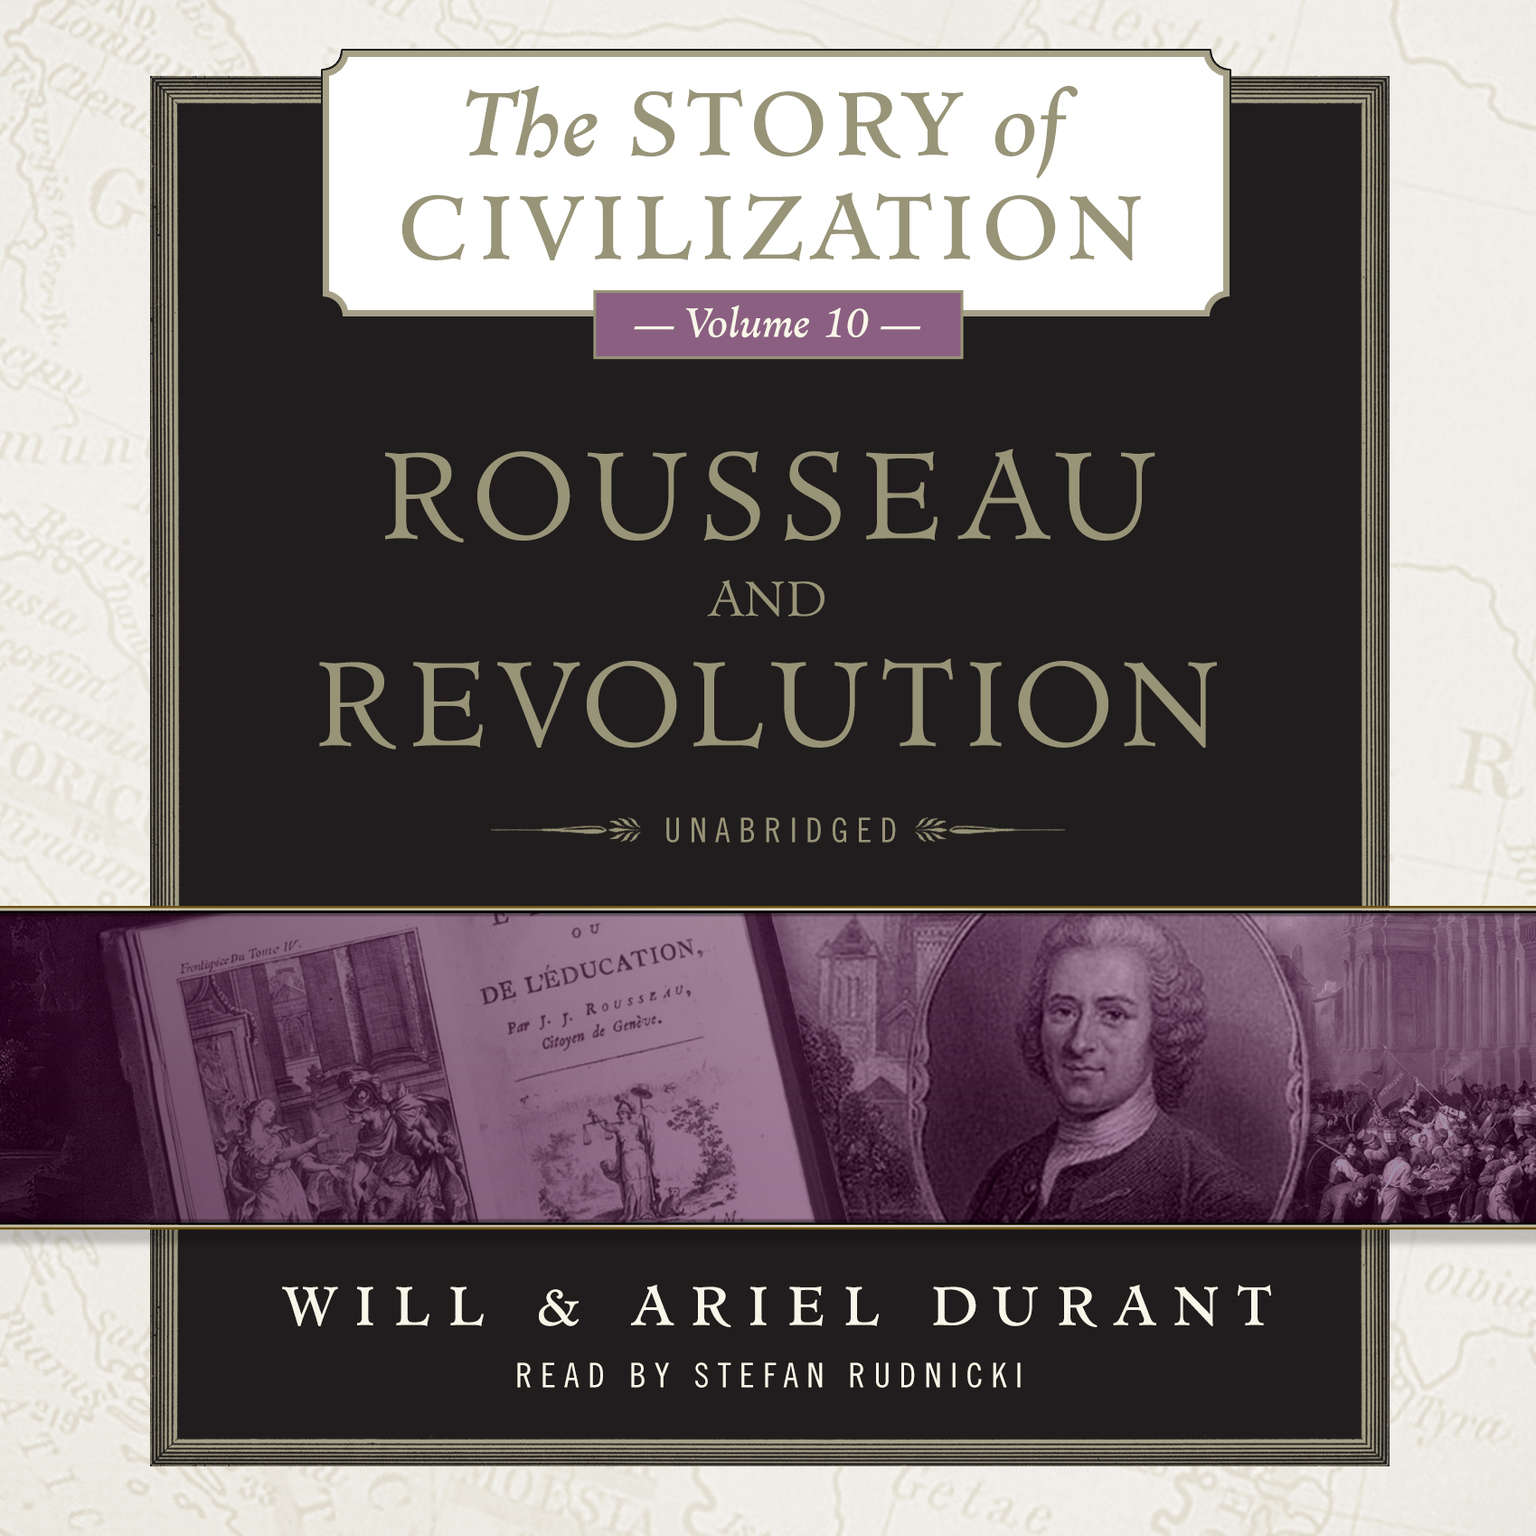 Rousseau and Revolution: A History of Civilization in France, England, and Germany from 1756, and in the Remainder of Europe from 1715 to 1789 Audiobook, by Will Durant